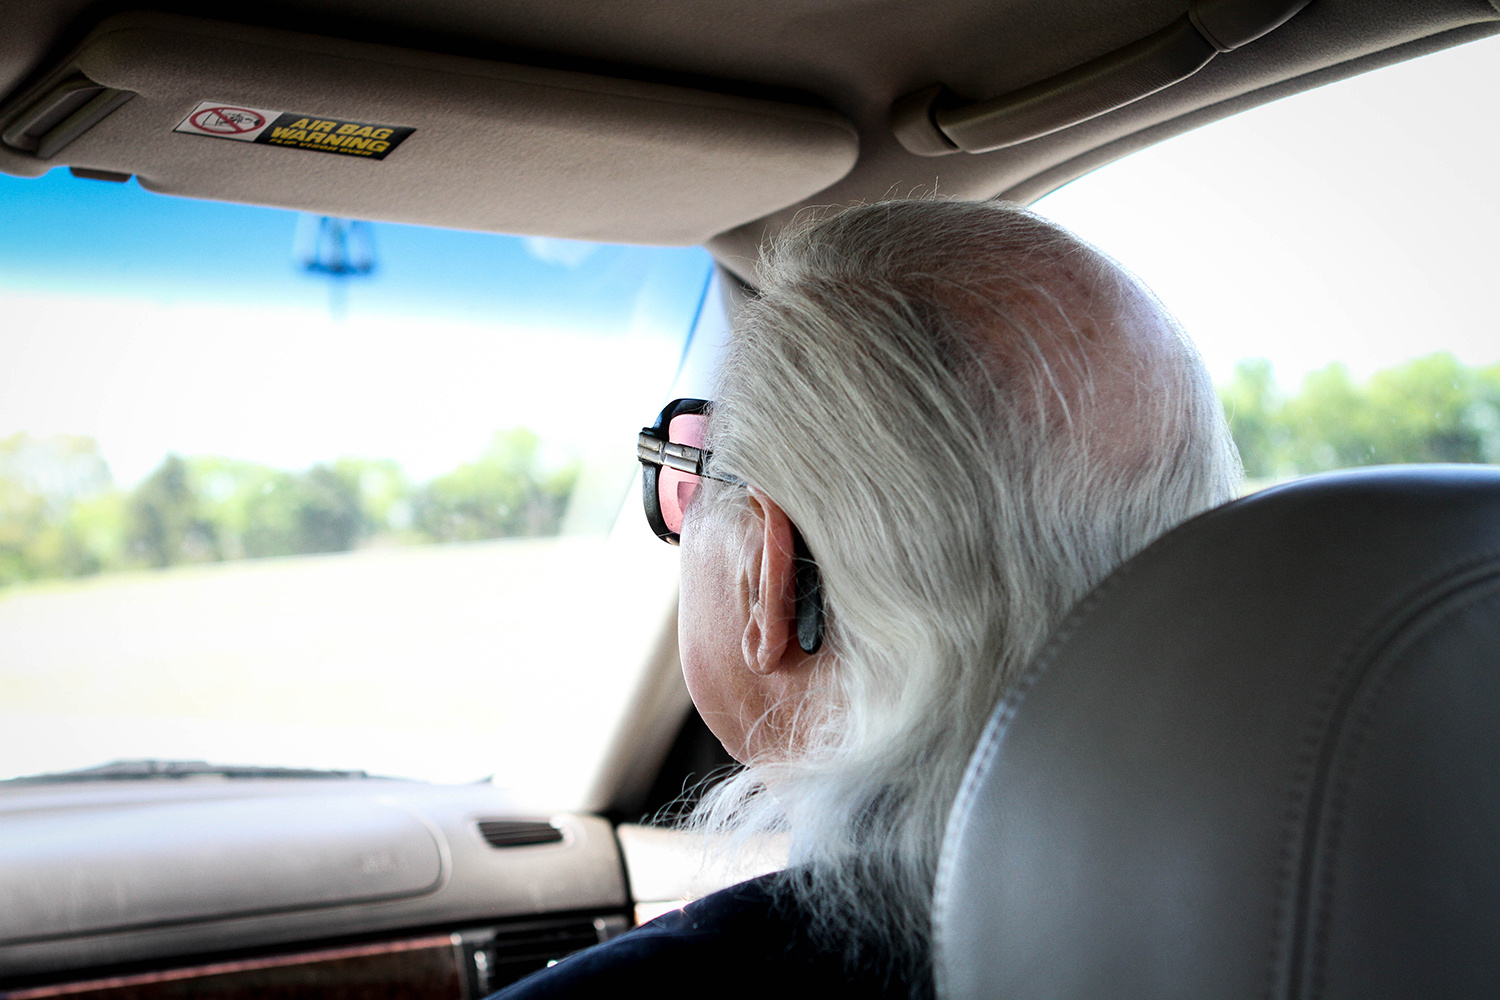 Maura Friedman / Chattanooga Times Free Press . May 3, 2014. Radio personality Tommy Jett sets out for the Tennessee Radio Personality Hall of Fame dinner from his home in Flintstone, Walker County, Georgia.